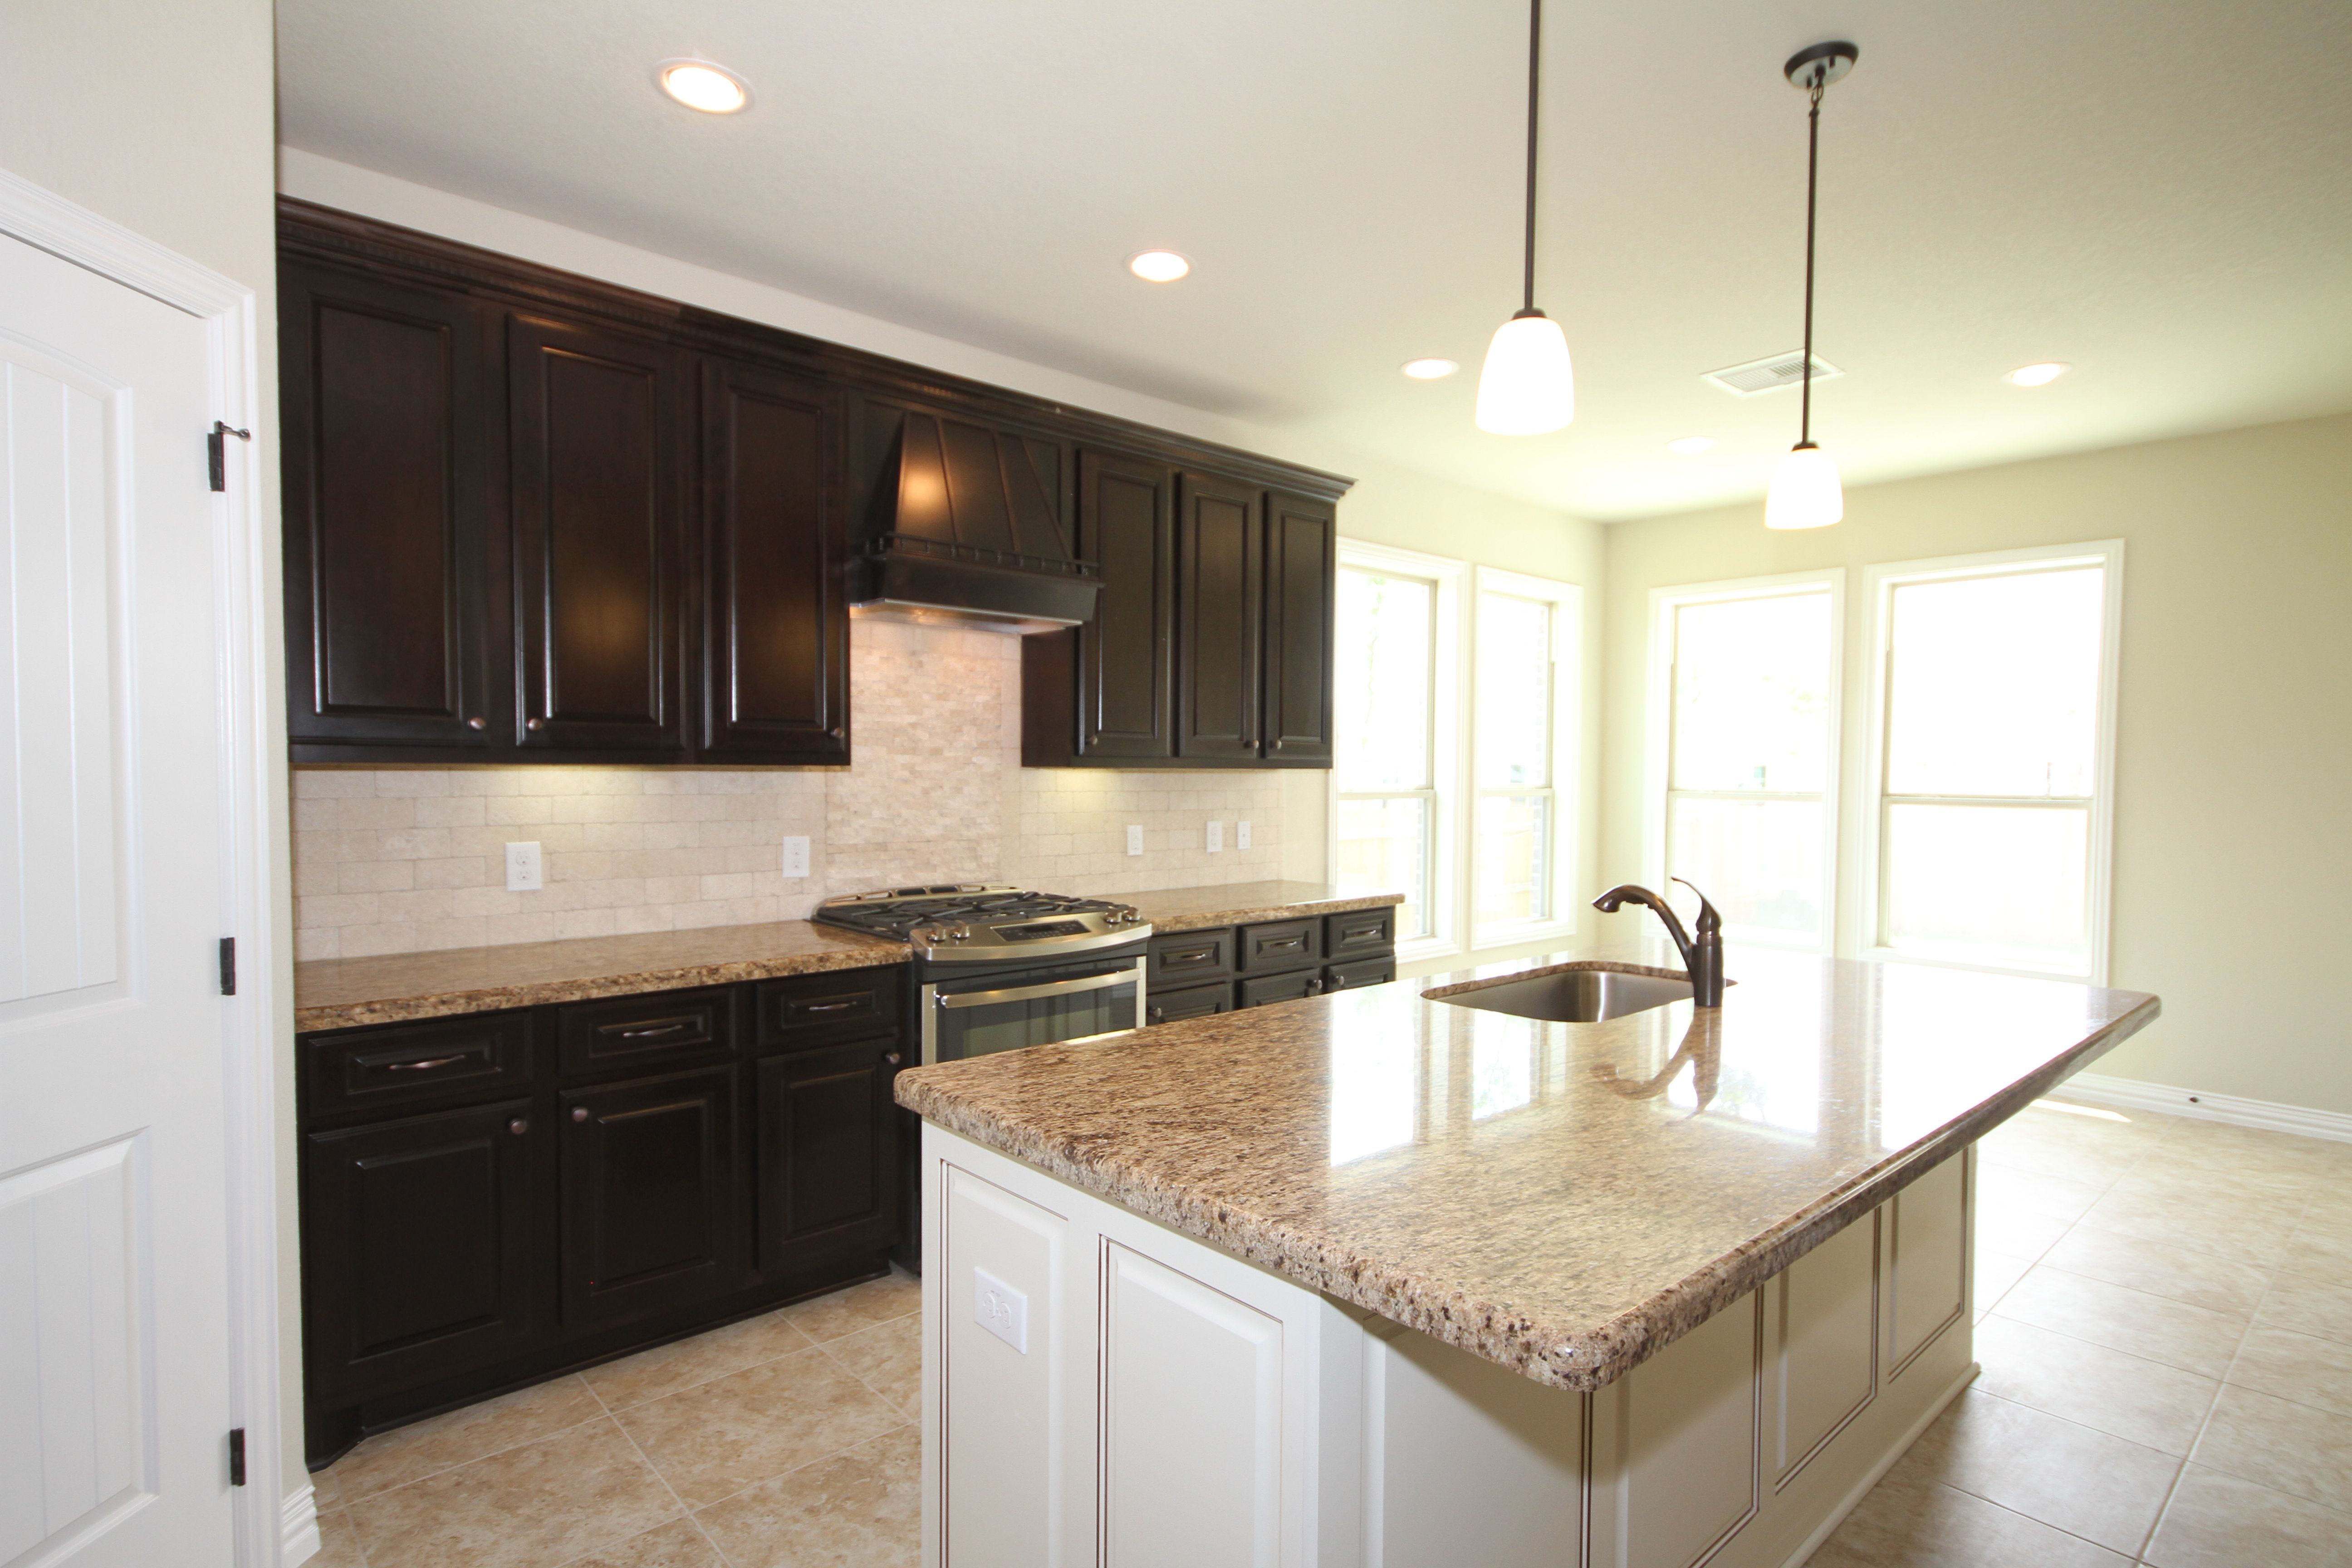 Kitchen featured in The Rebecca By Kinsmen Homes  in Beaumont, TX